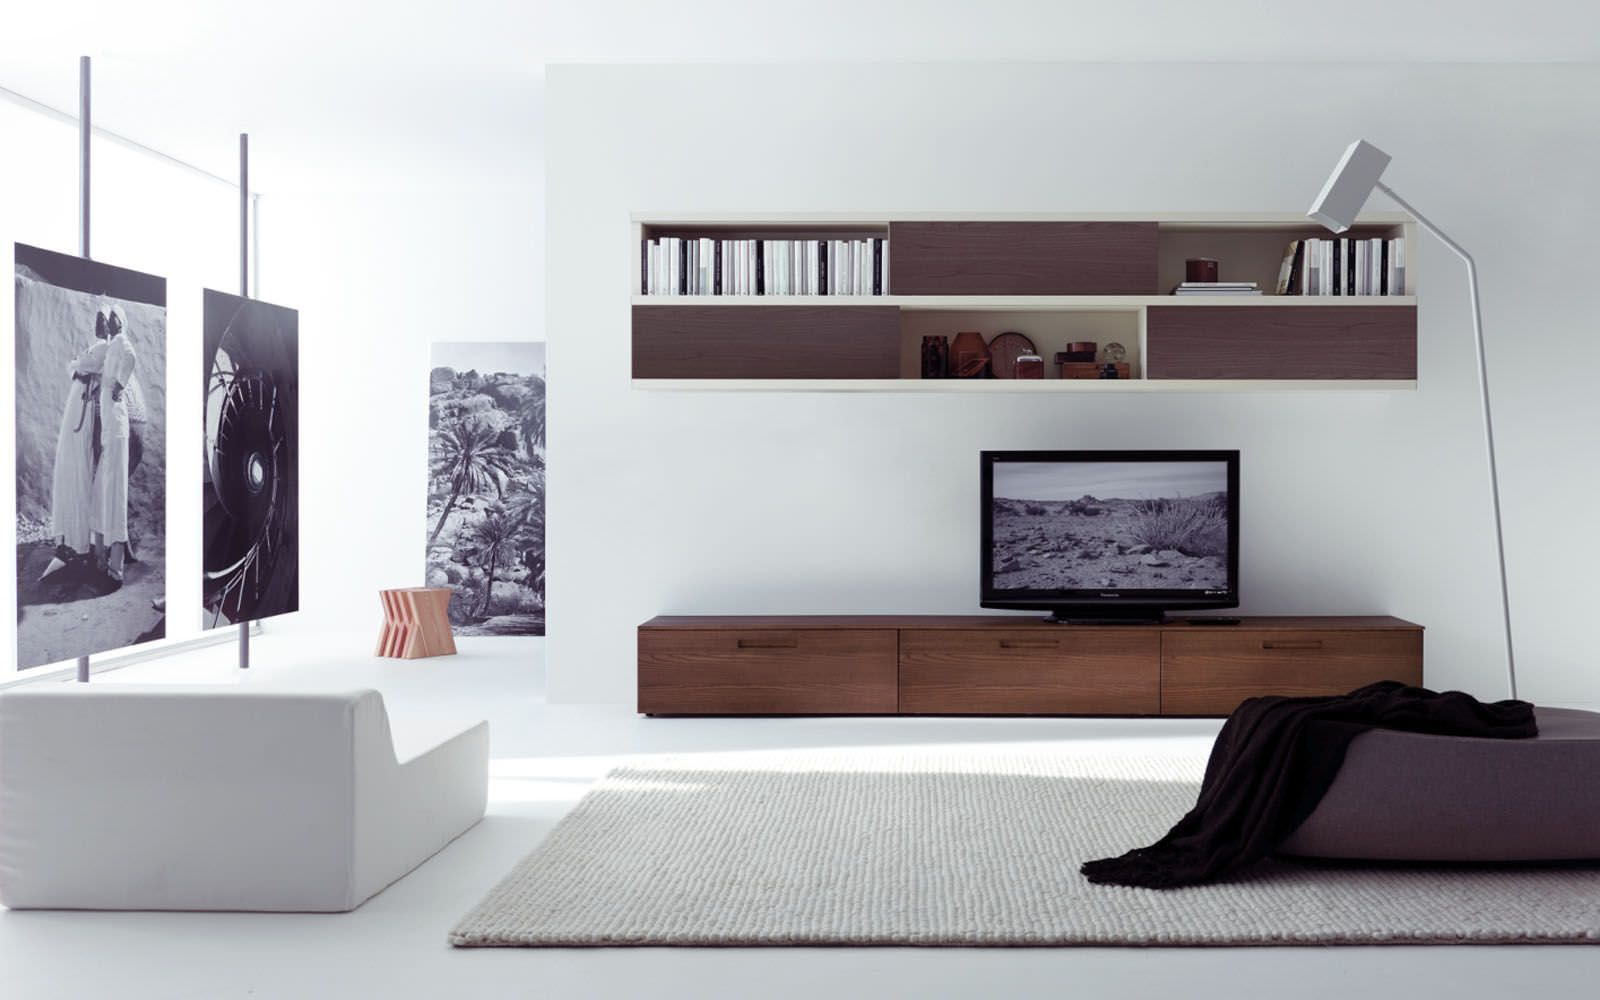 Beau Appeliang Brown Television Wall Cabinet Design Idea With Black Television,  White Wall, And White